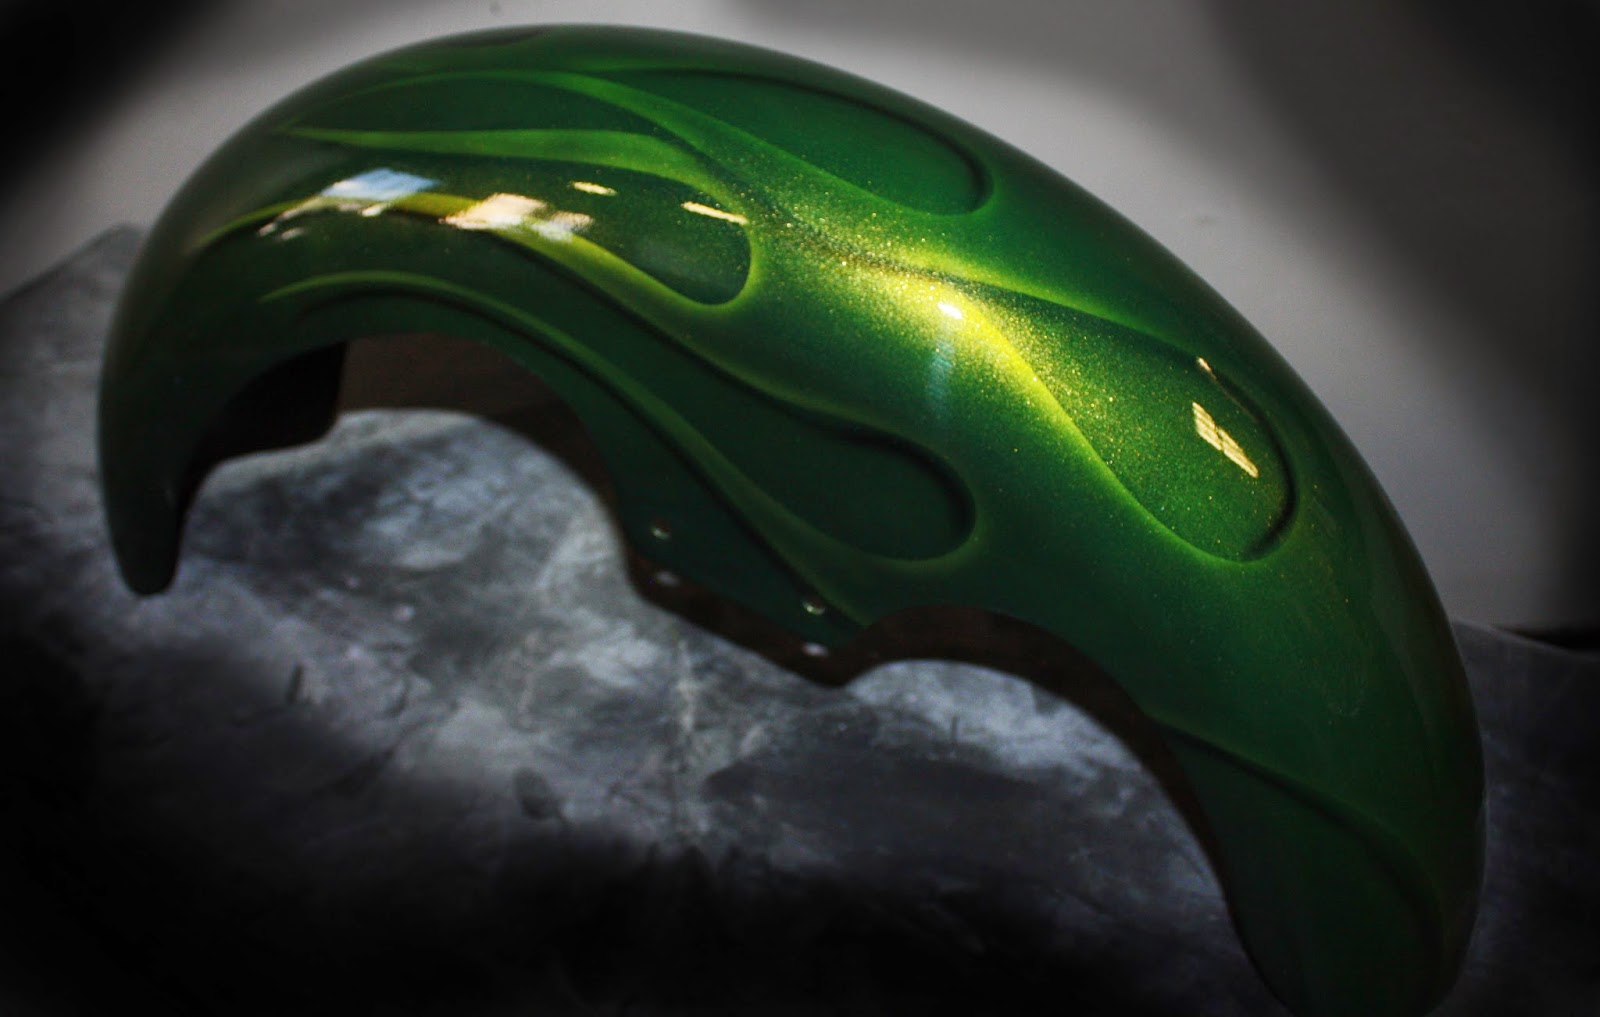 Online Motorcycle Paint Shop Lime Gold Green Candy Flames